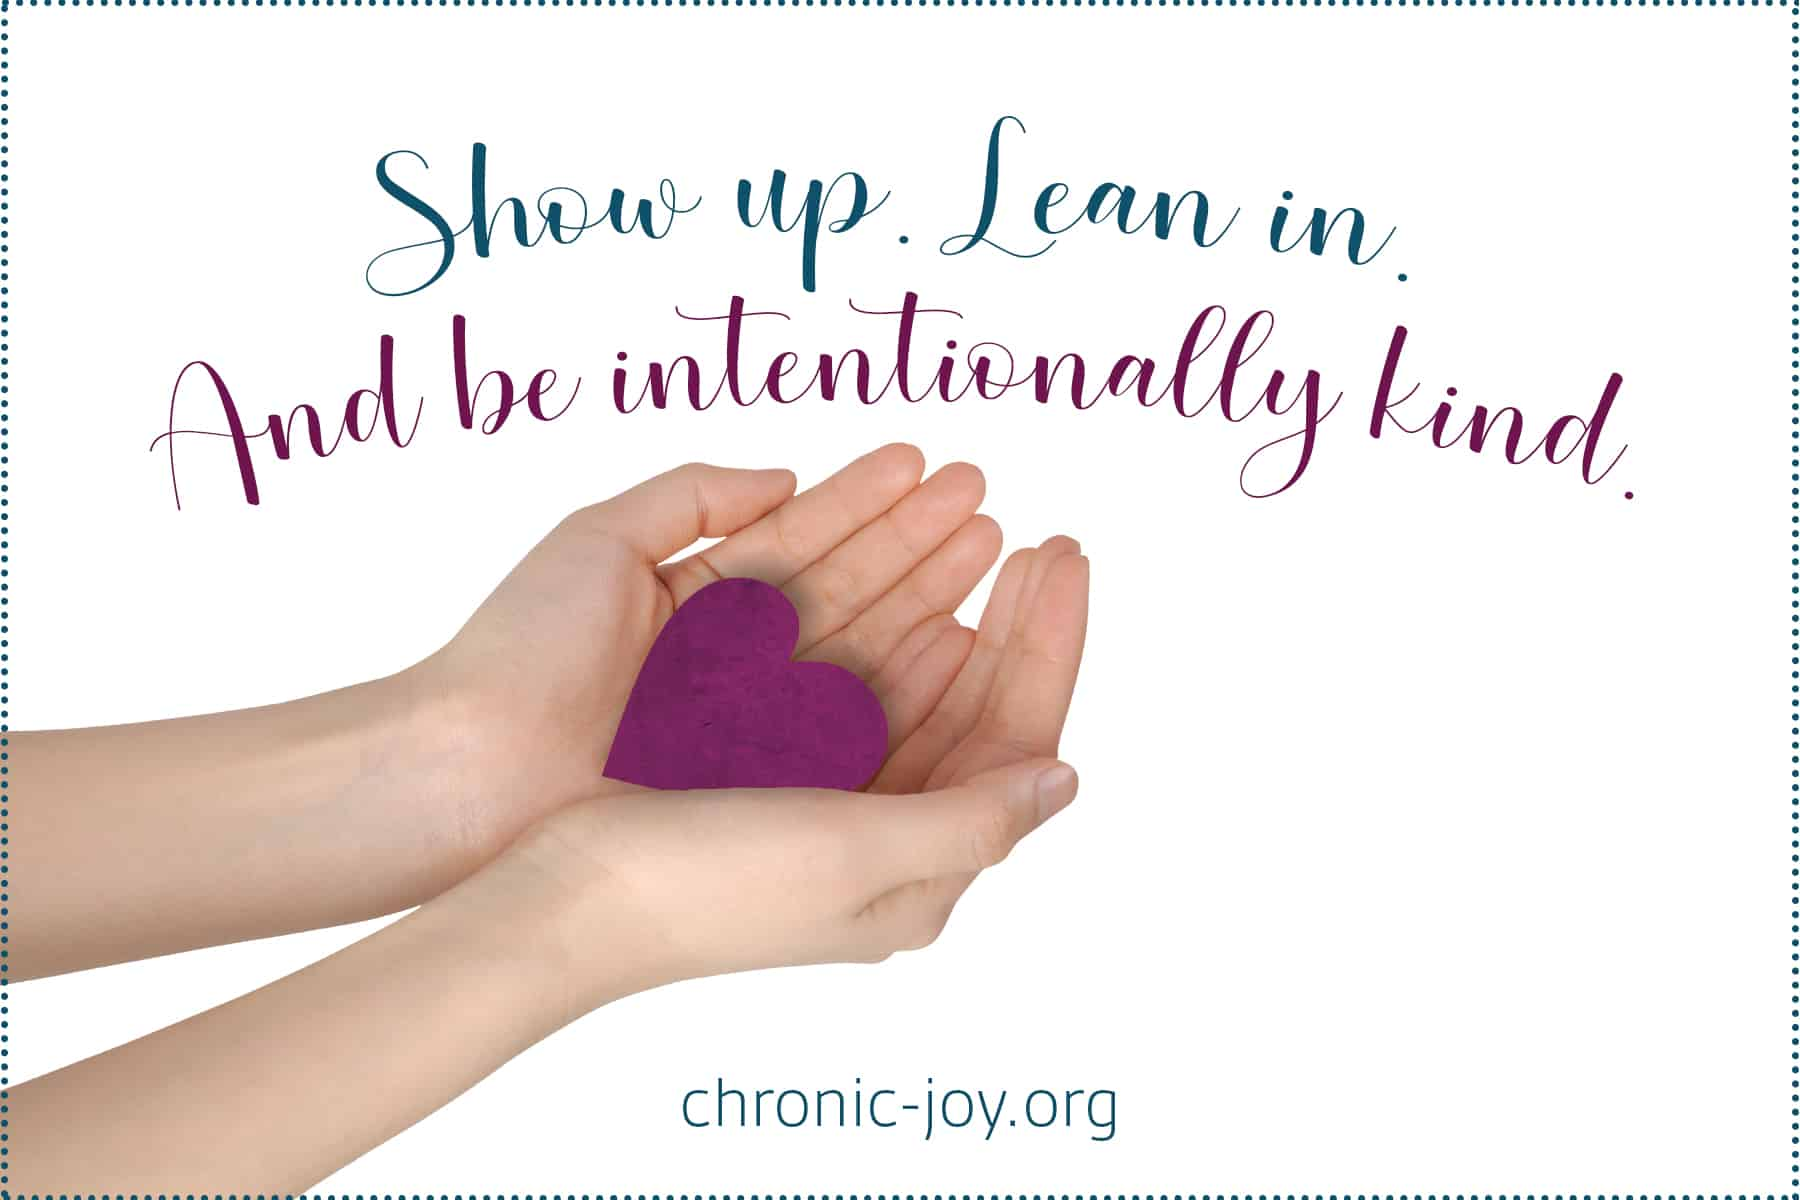 Show up. Lean in. And be intentionally kind.